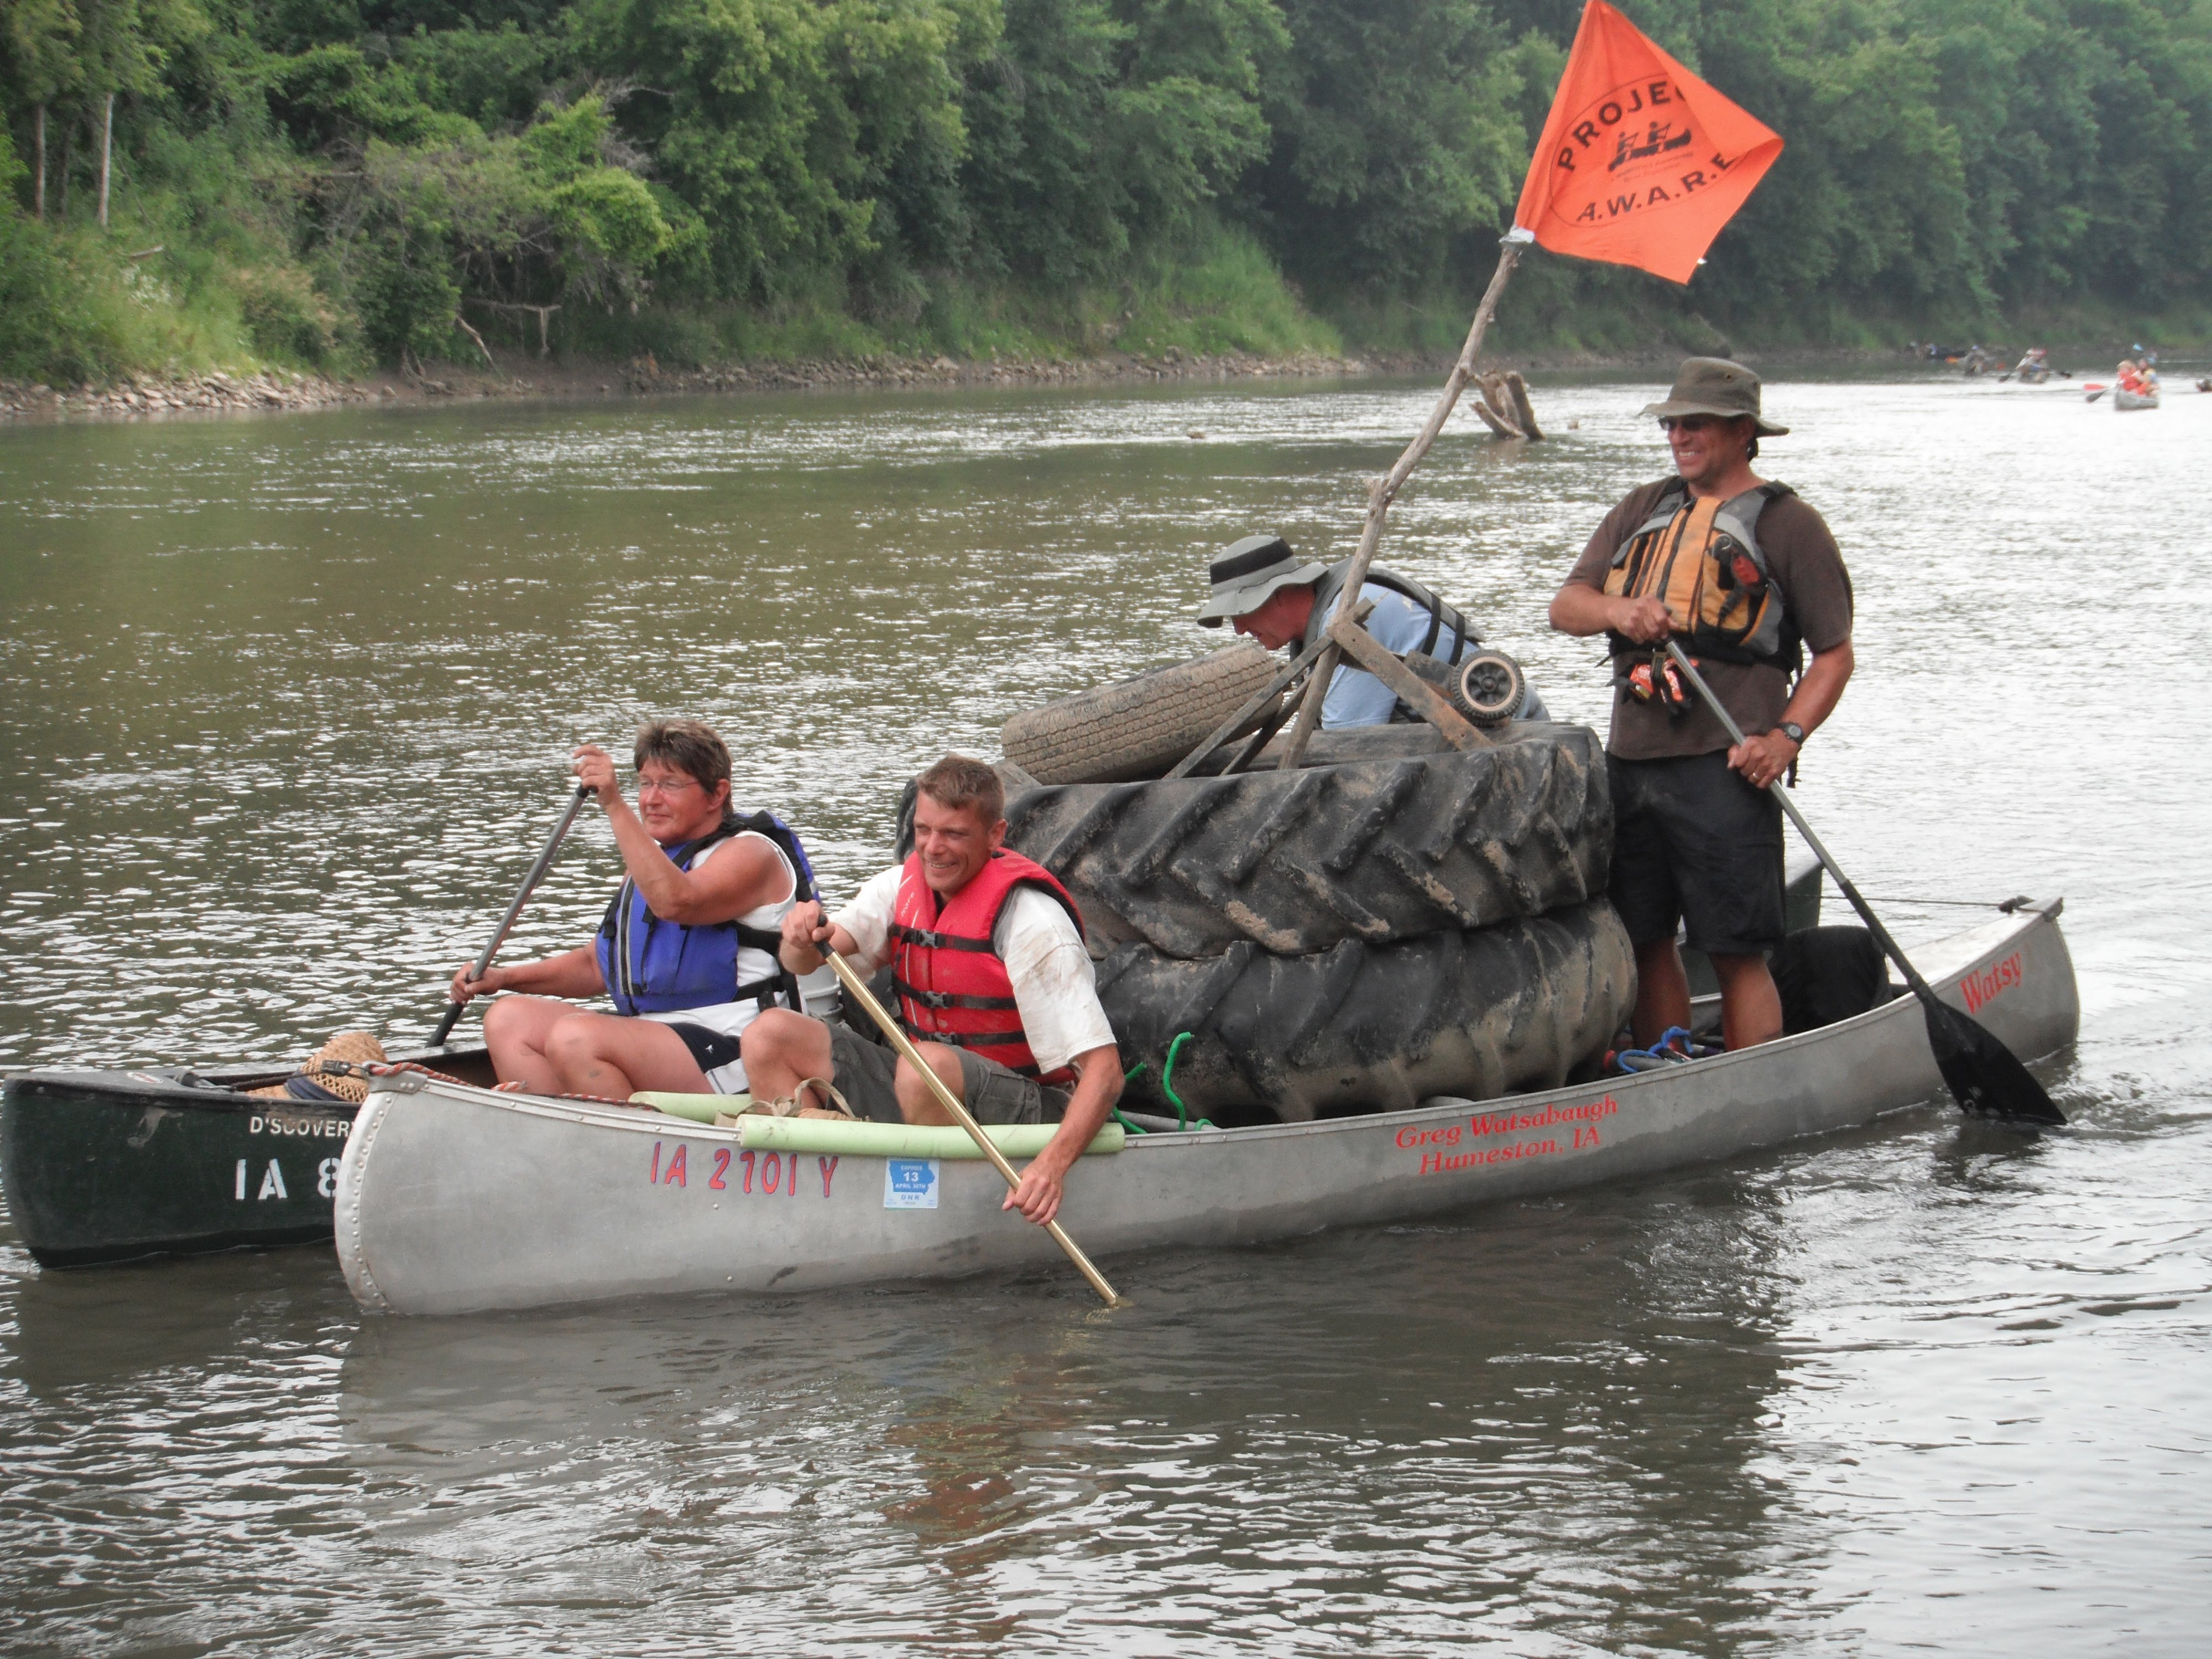 Canoers with Tractor tire